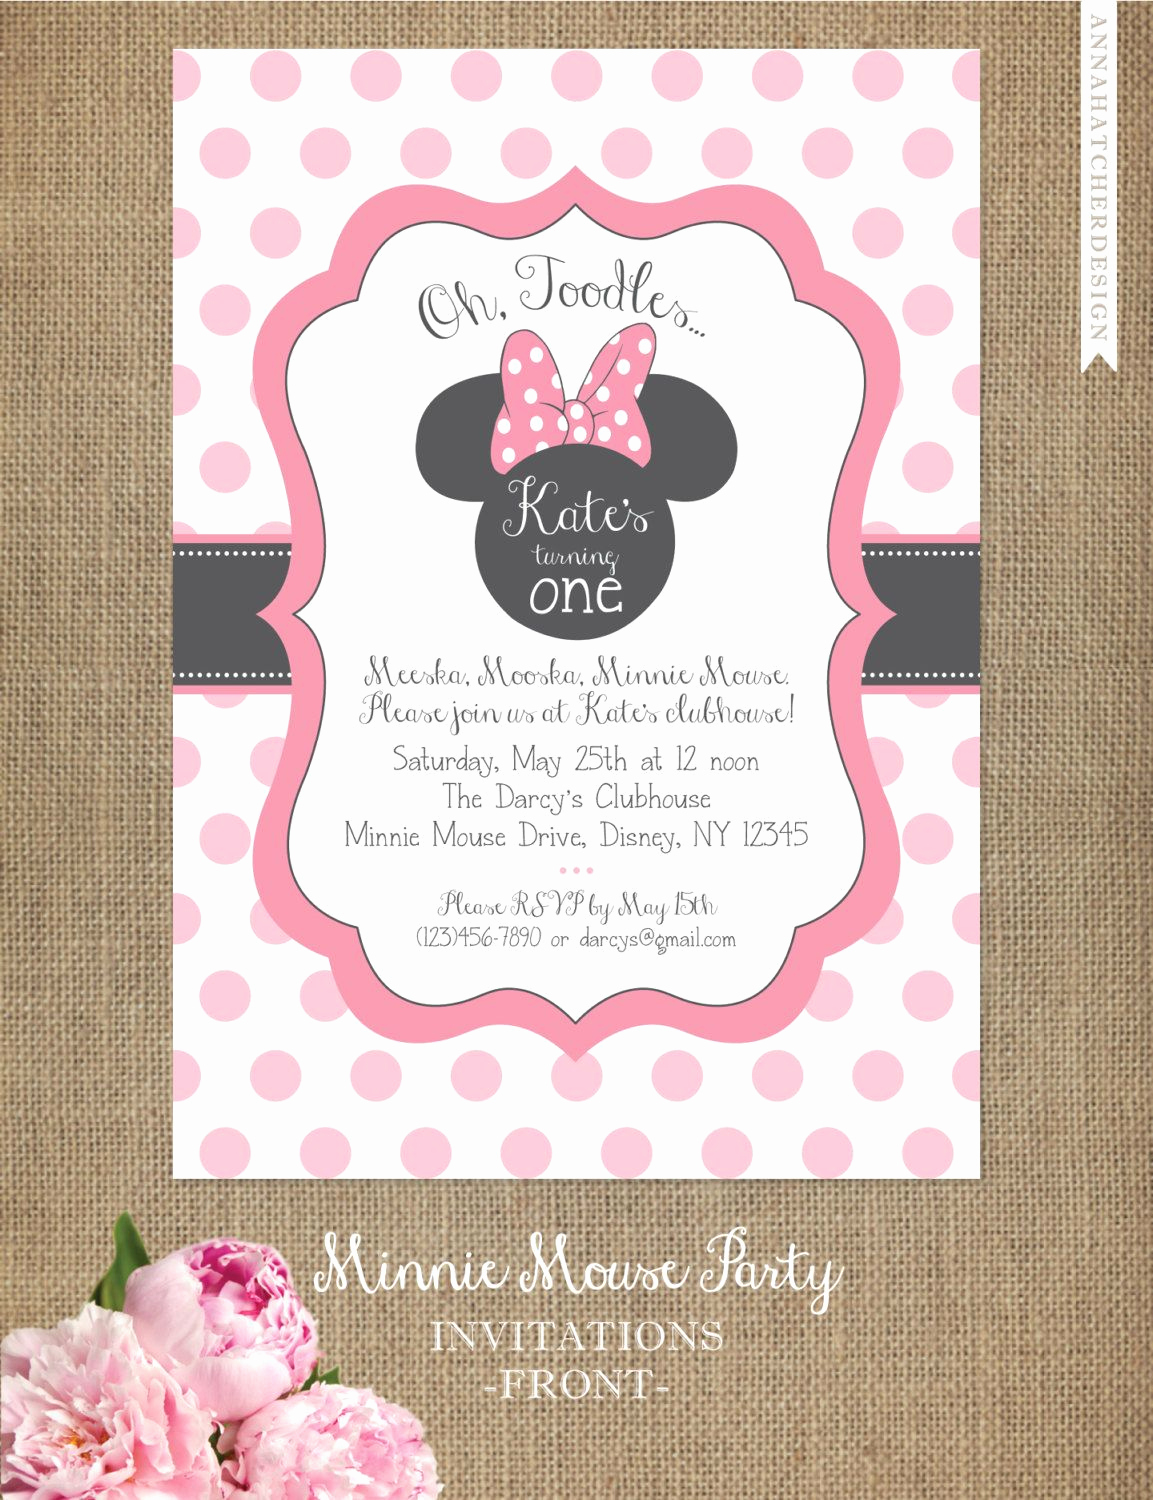 Minnie Mouse Birthday Invitation Template Unique Minnie Mouse Invitation Editable Birthday Invitation